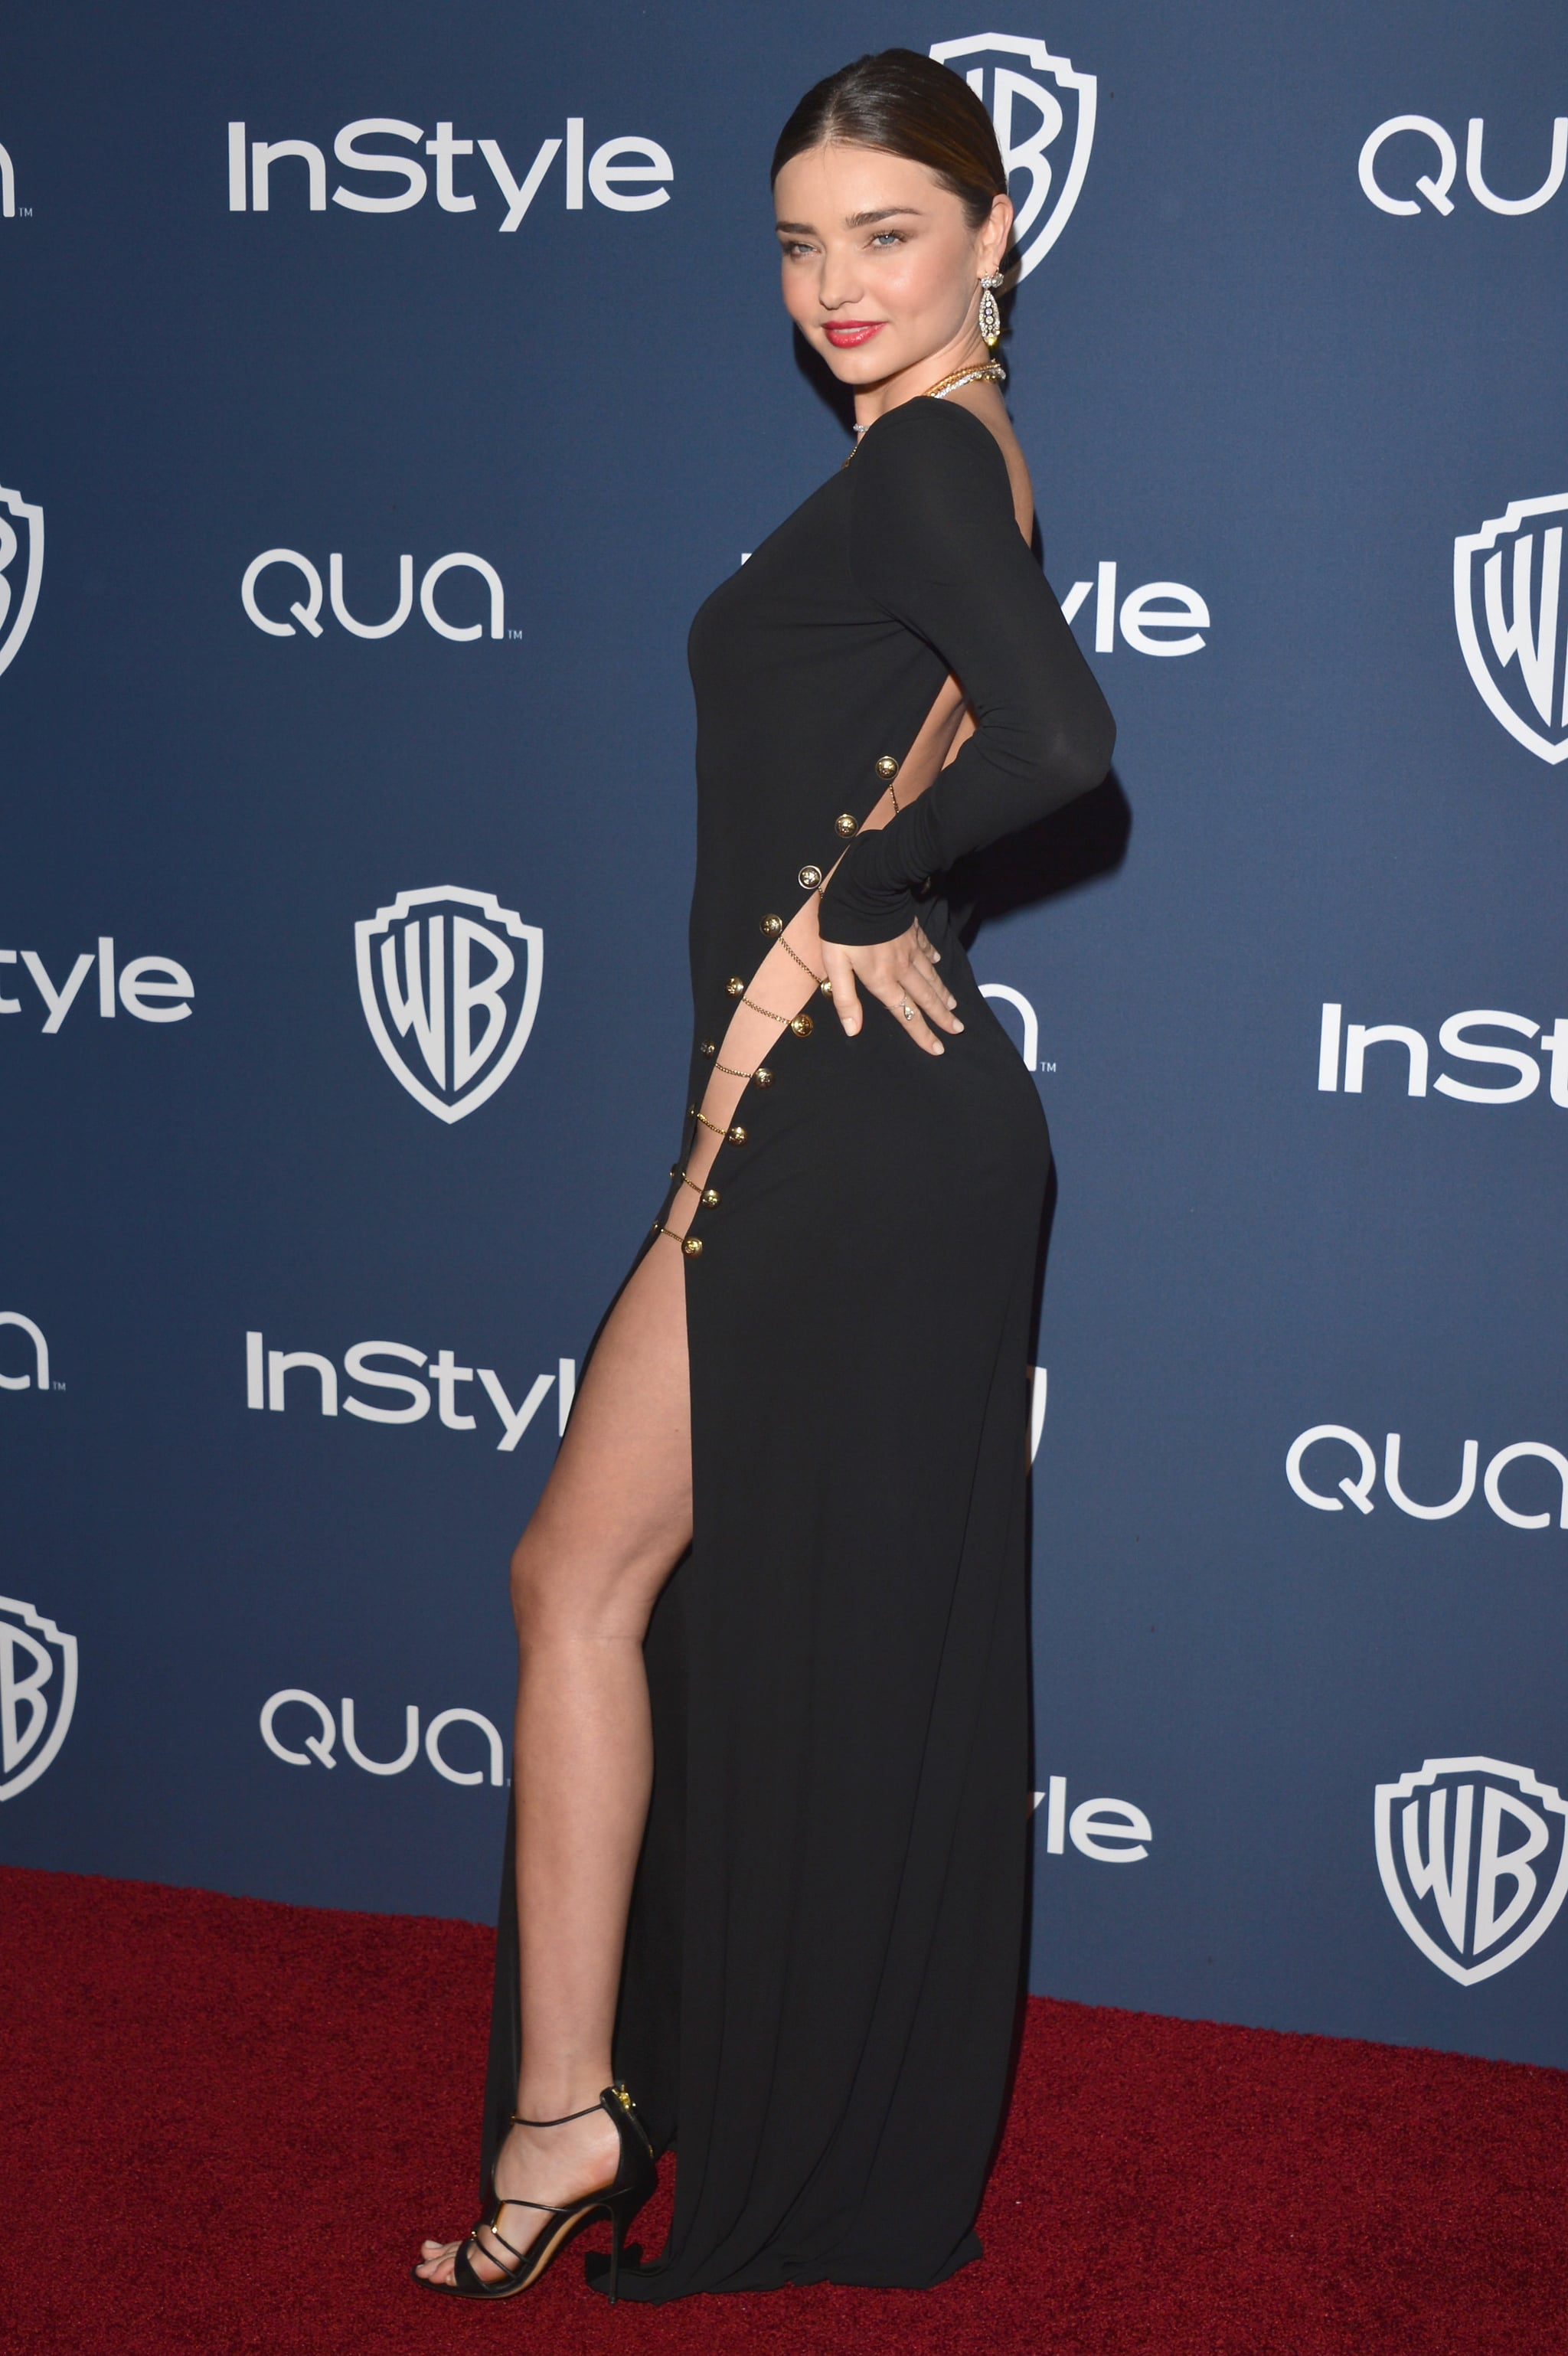 Miranda Kerr stepped out in a supersexy black dress for the InStyle and Warner Bros. Golden Globes afterparty.